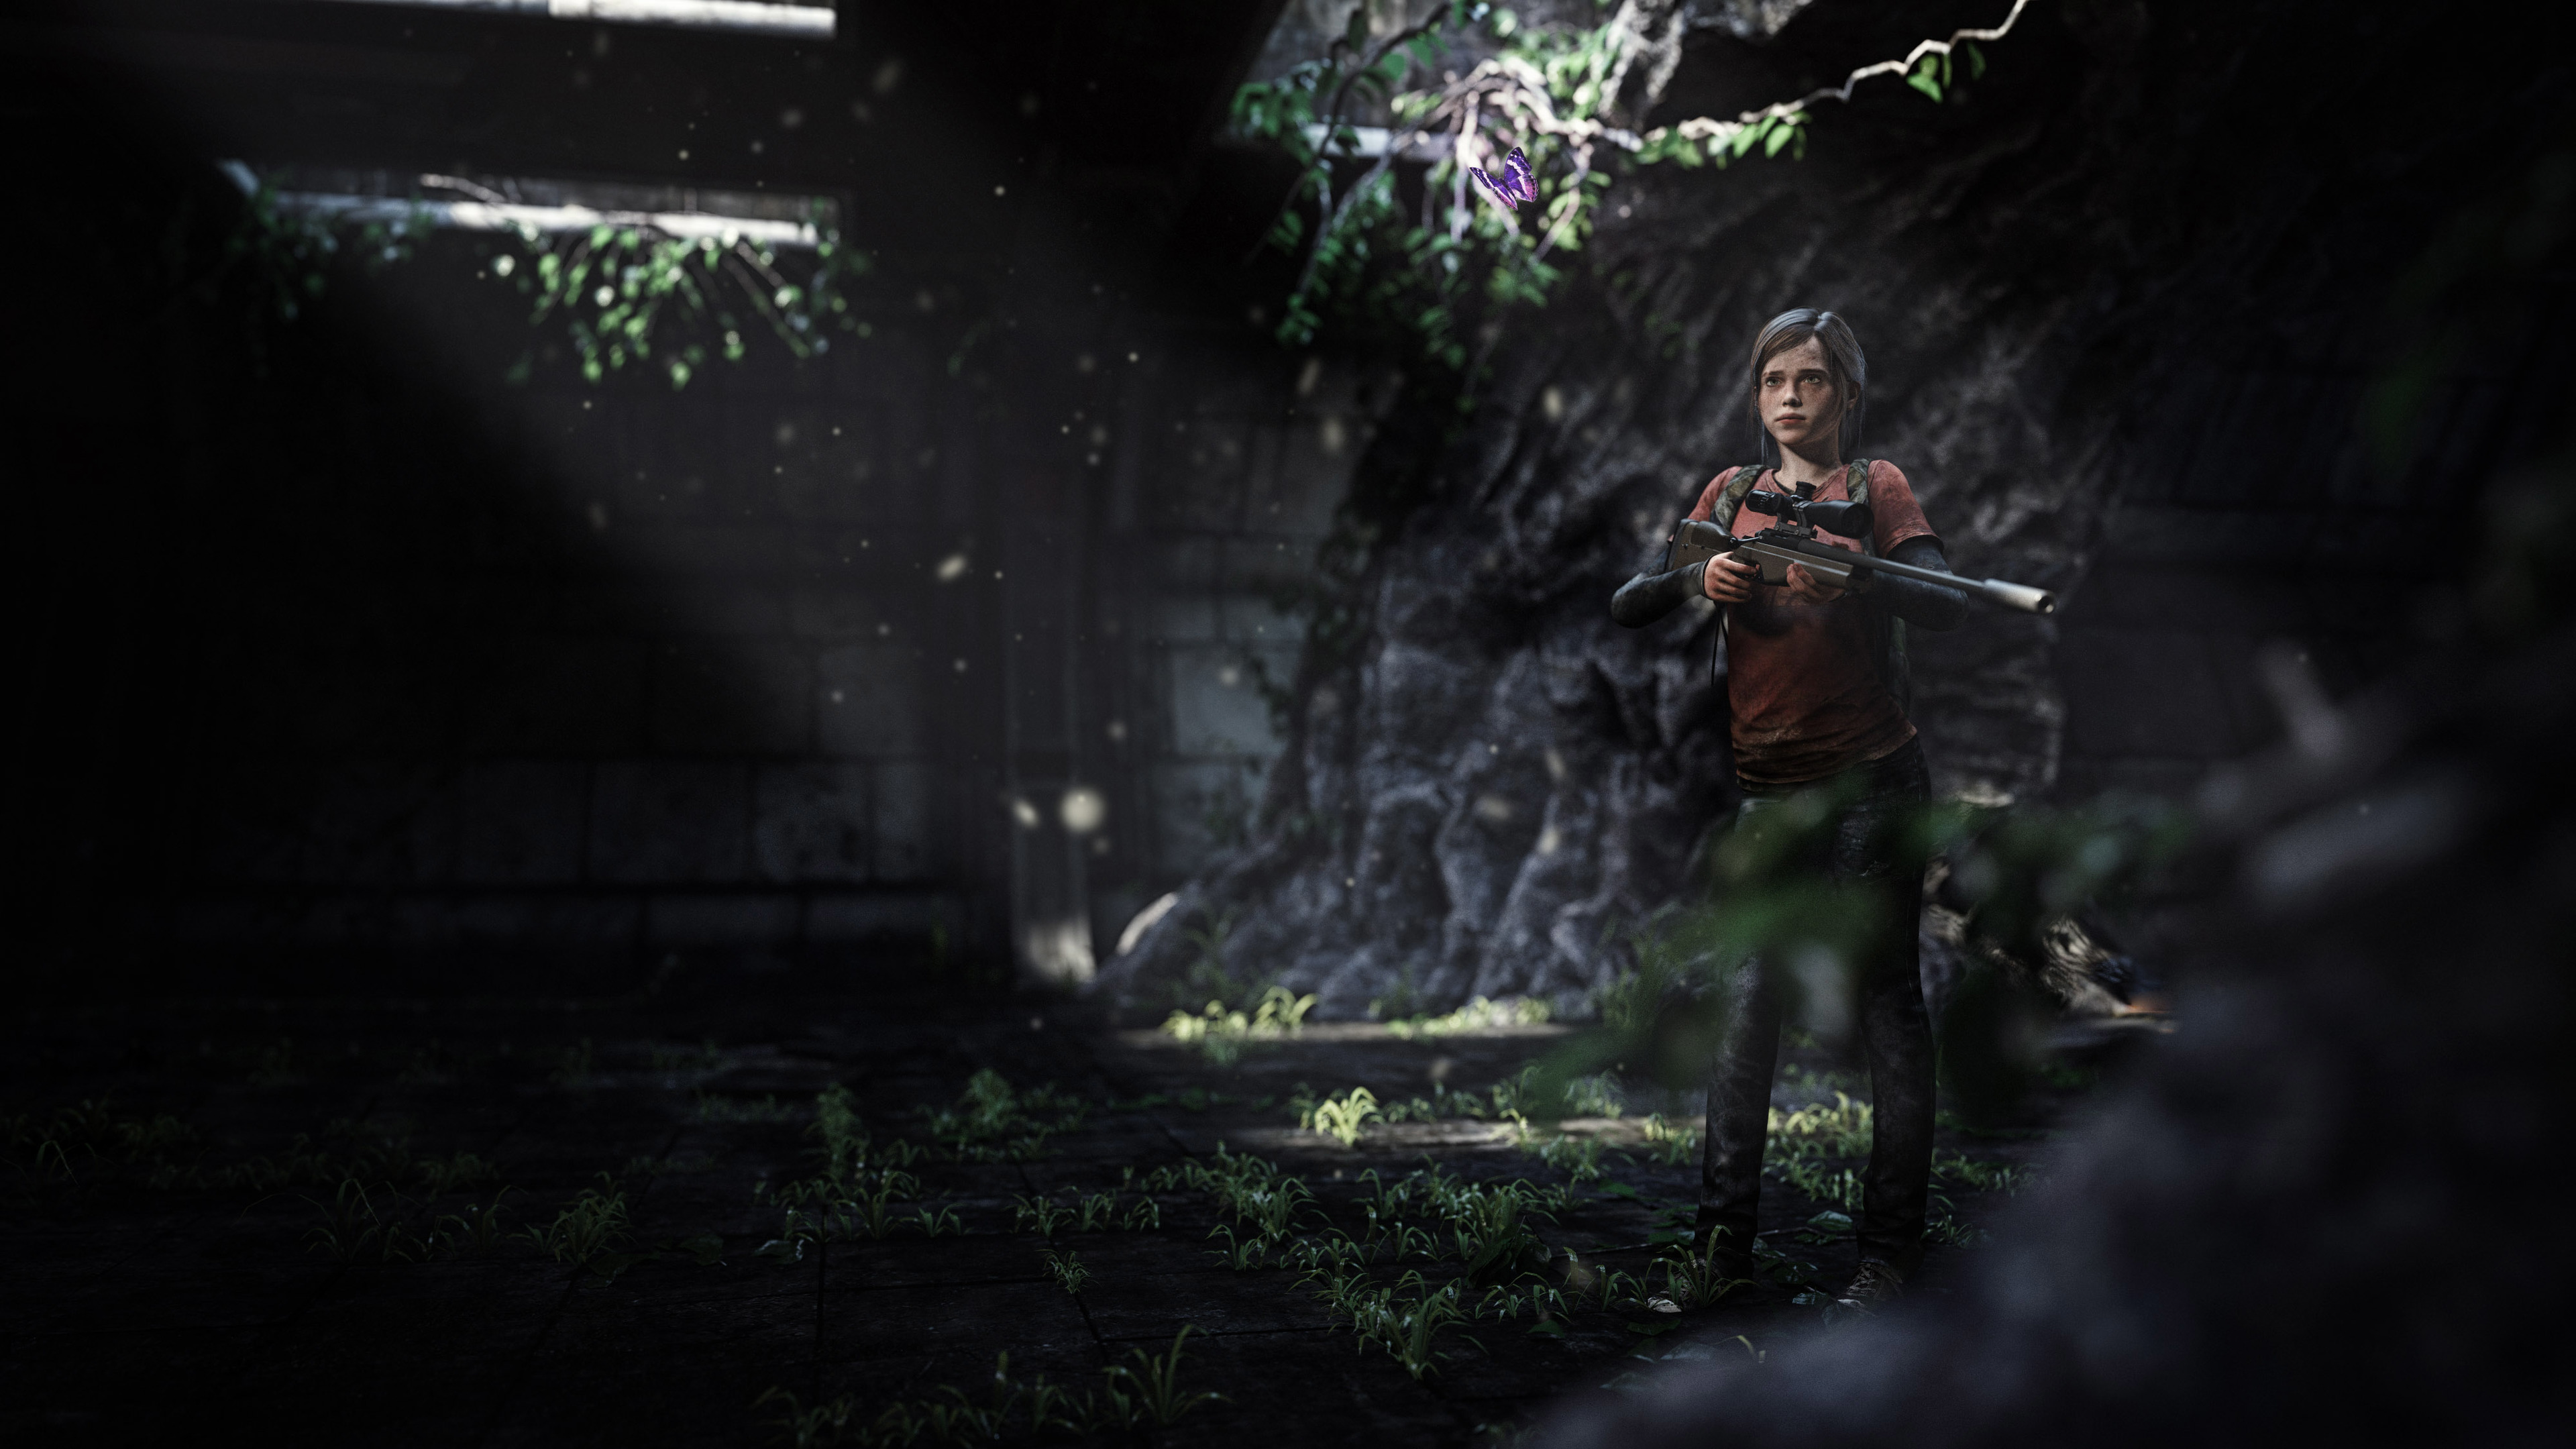 Wallpaper 4k Elle The Last Of Us 3d Art 3d Wallpapers 4k